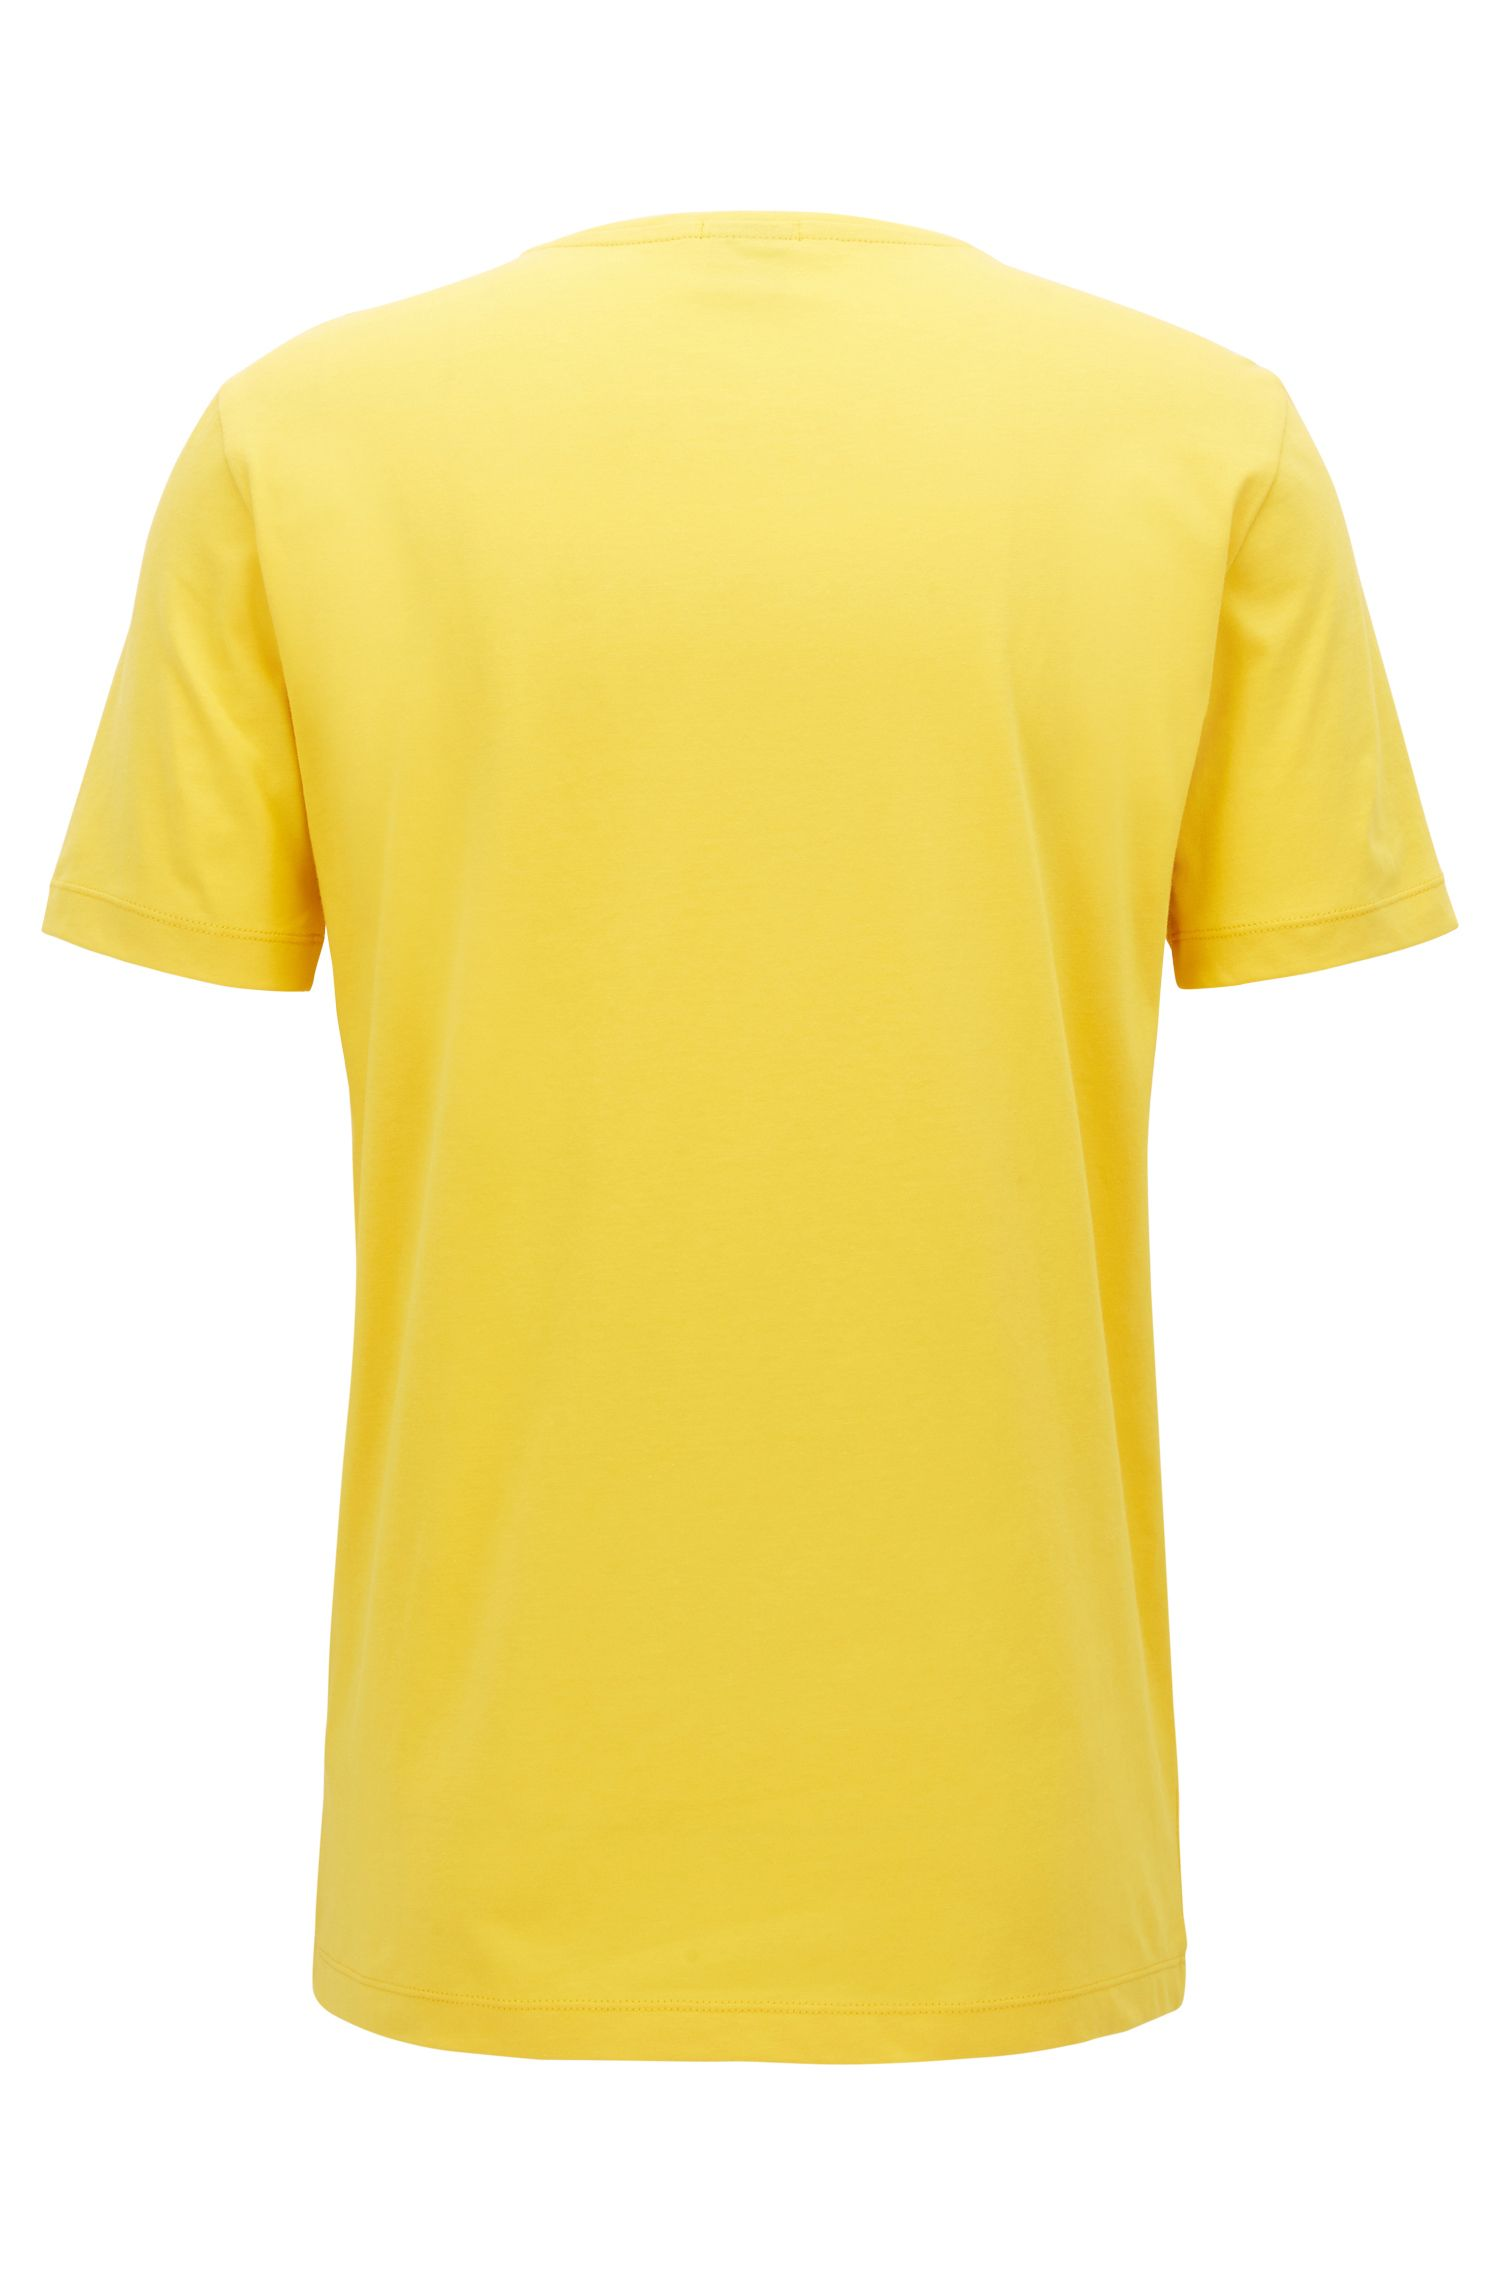 Crew-neck T-shirt in yarn-dyed single jersey